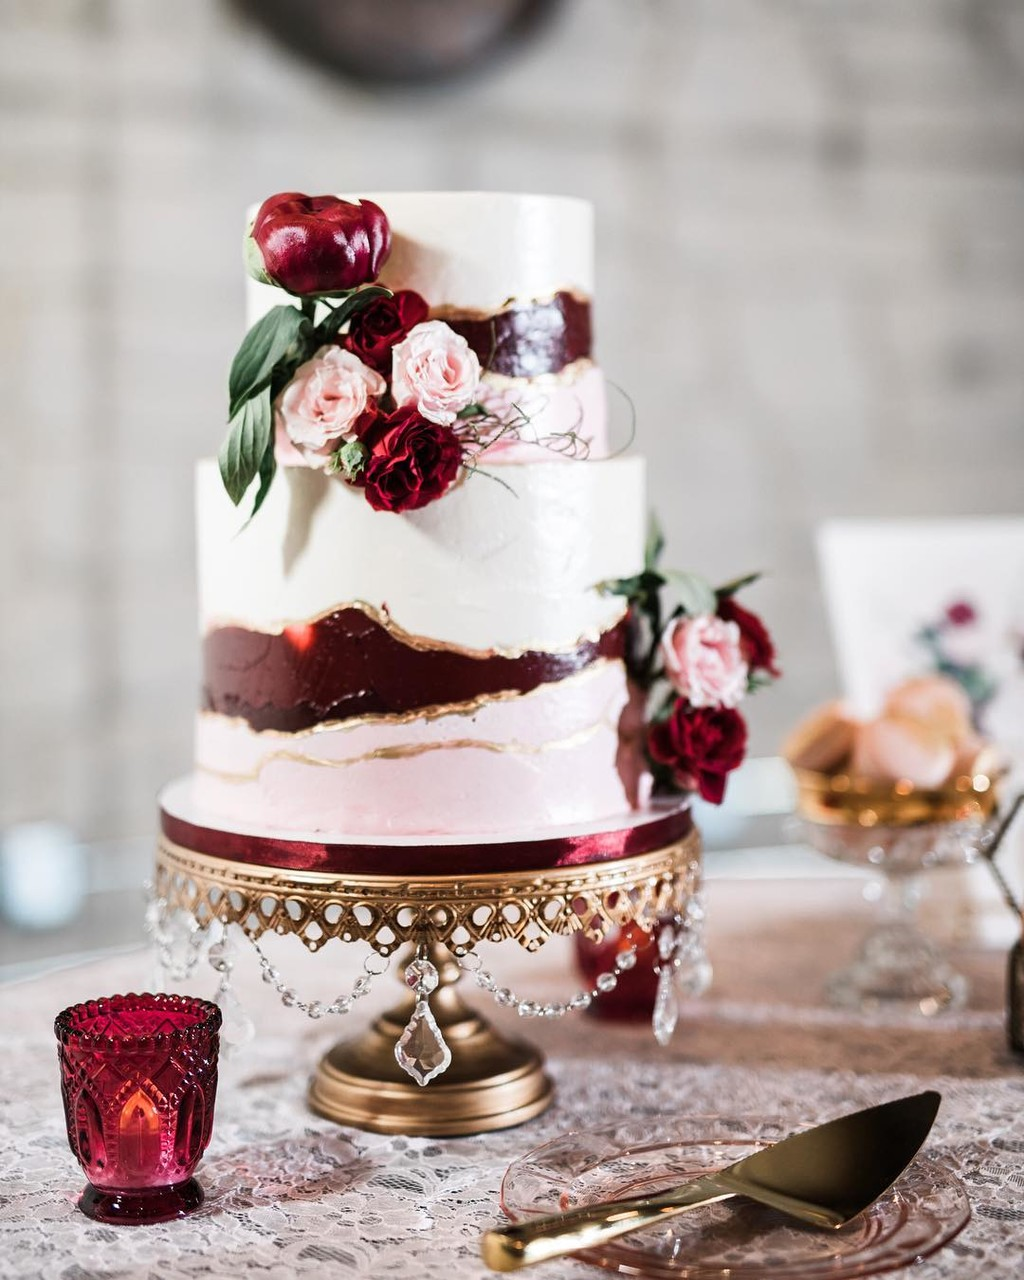 Romantic Burgundy & Blush Wedding Cake on our #original